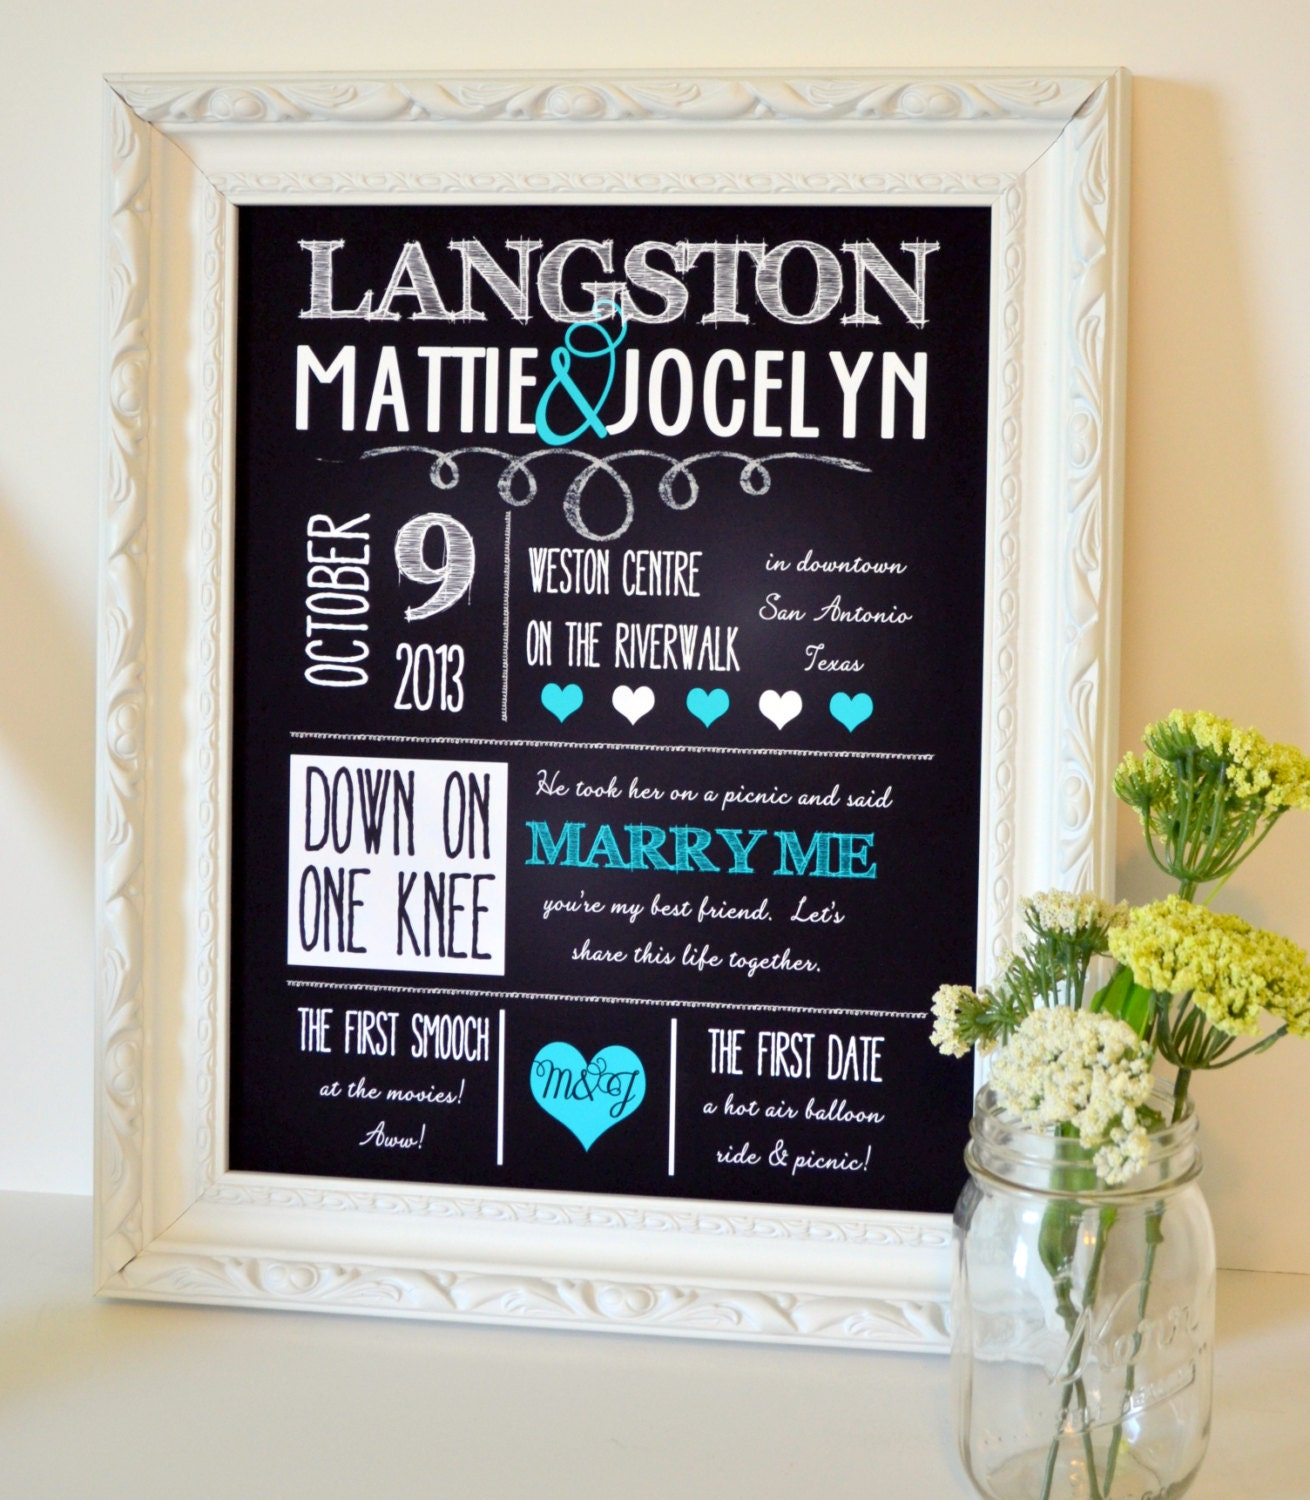 All about us chalkboard 8x10 print custom wedding by for Engagement decorations ideas at home